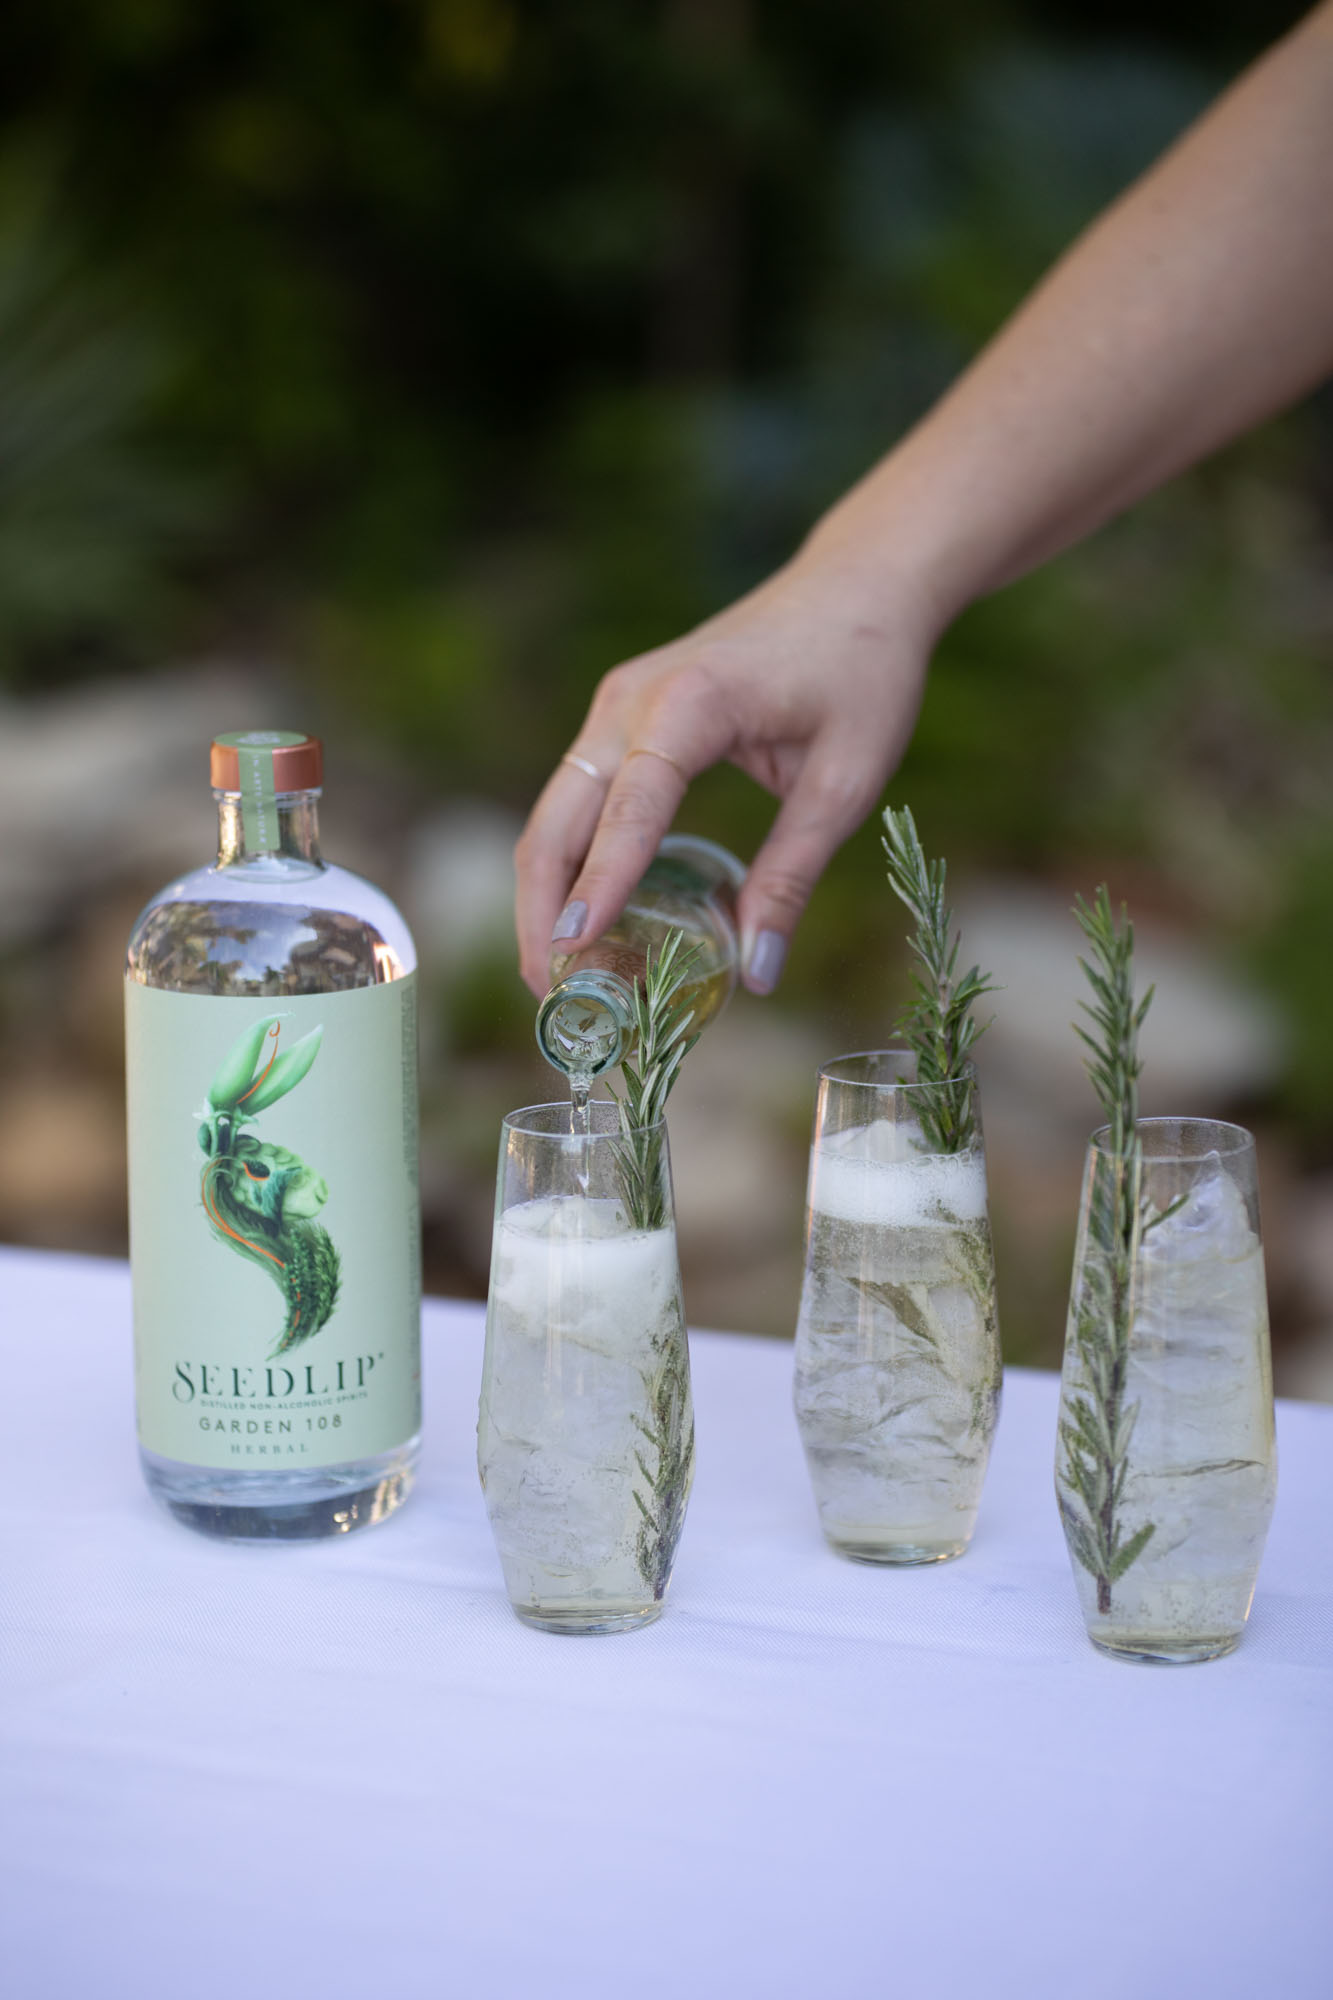 nonalcoholic cocktails with rosemary sprigs and bottle of Seedlip